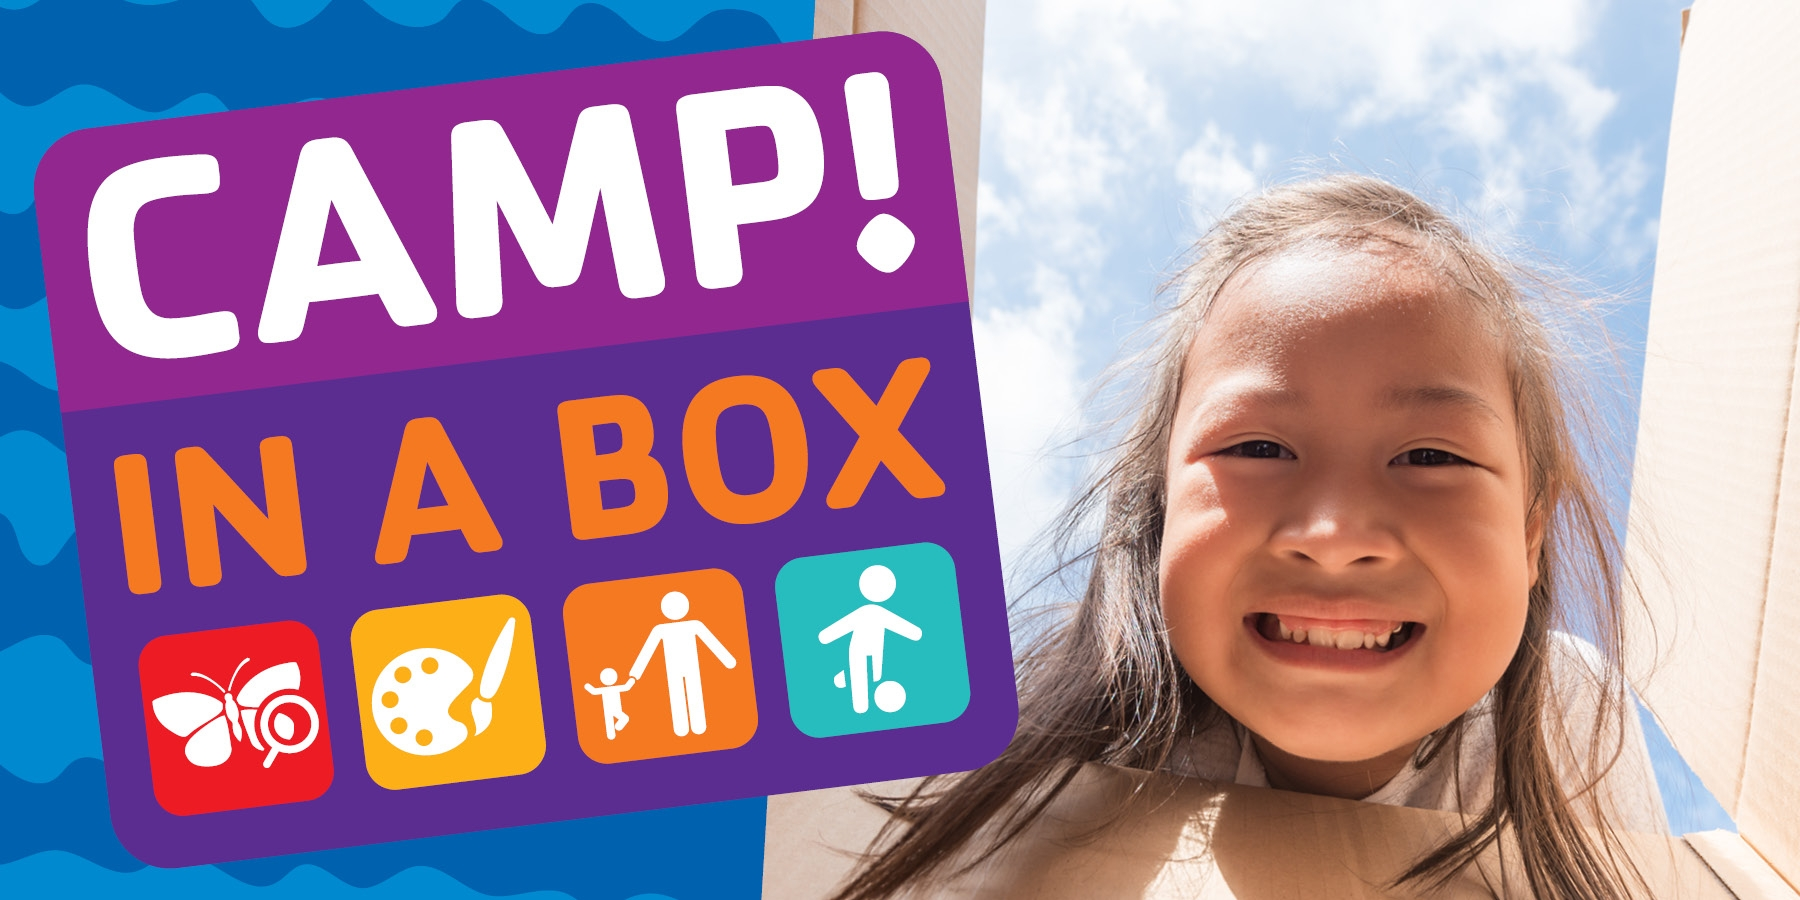 A girl looking into a box with a big smile, plus a logo for the Camp in a Box program.